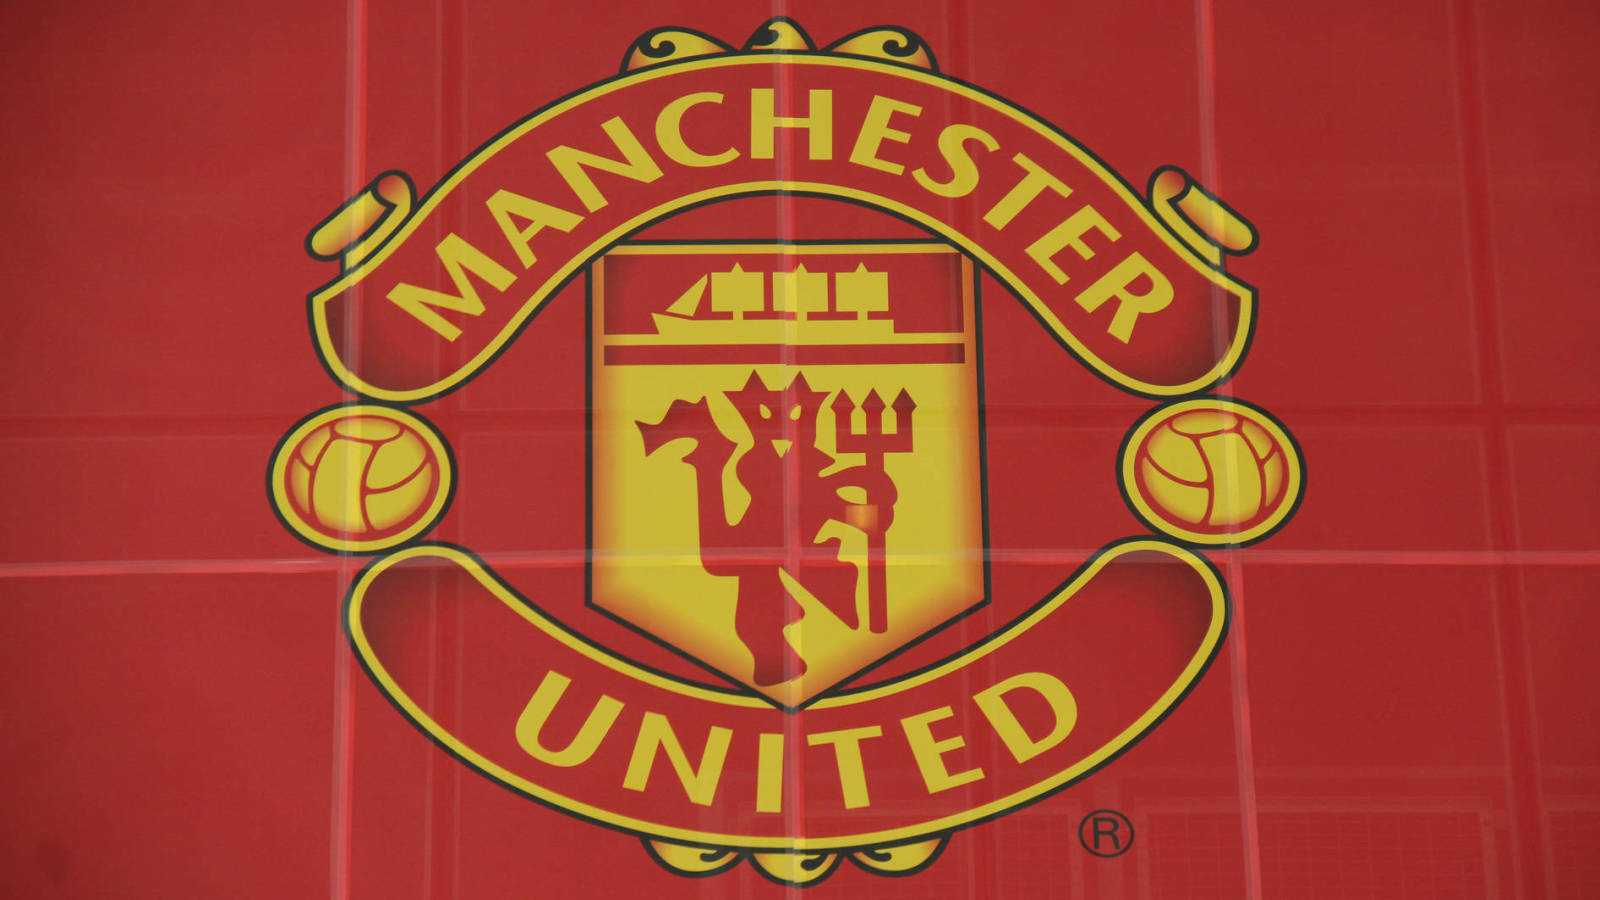 Manchester United victim of cyberattack